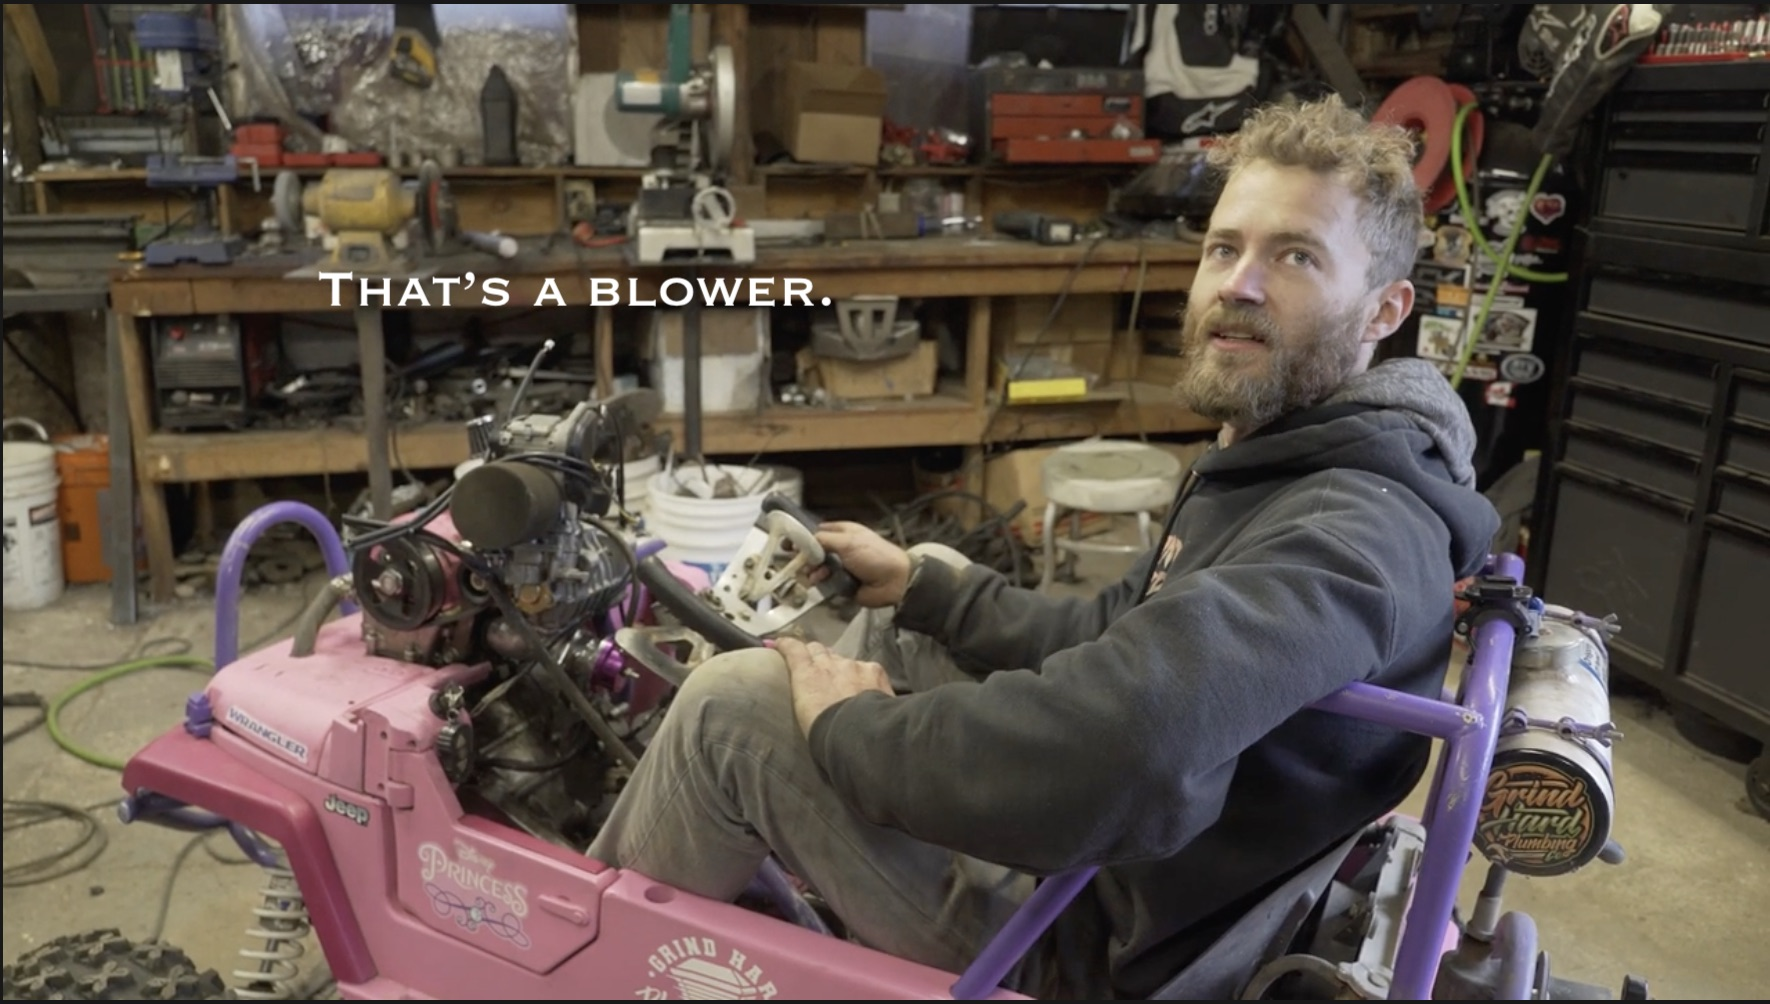 Supercharged Suicide: Adding A Blower To A Hot-Rodded Power Wheels